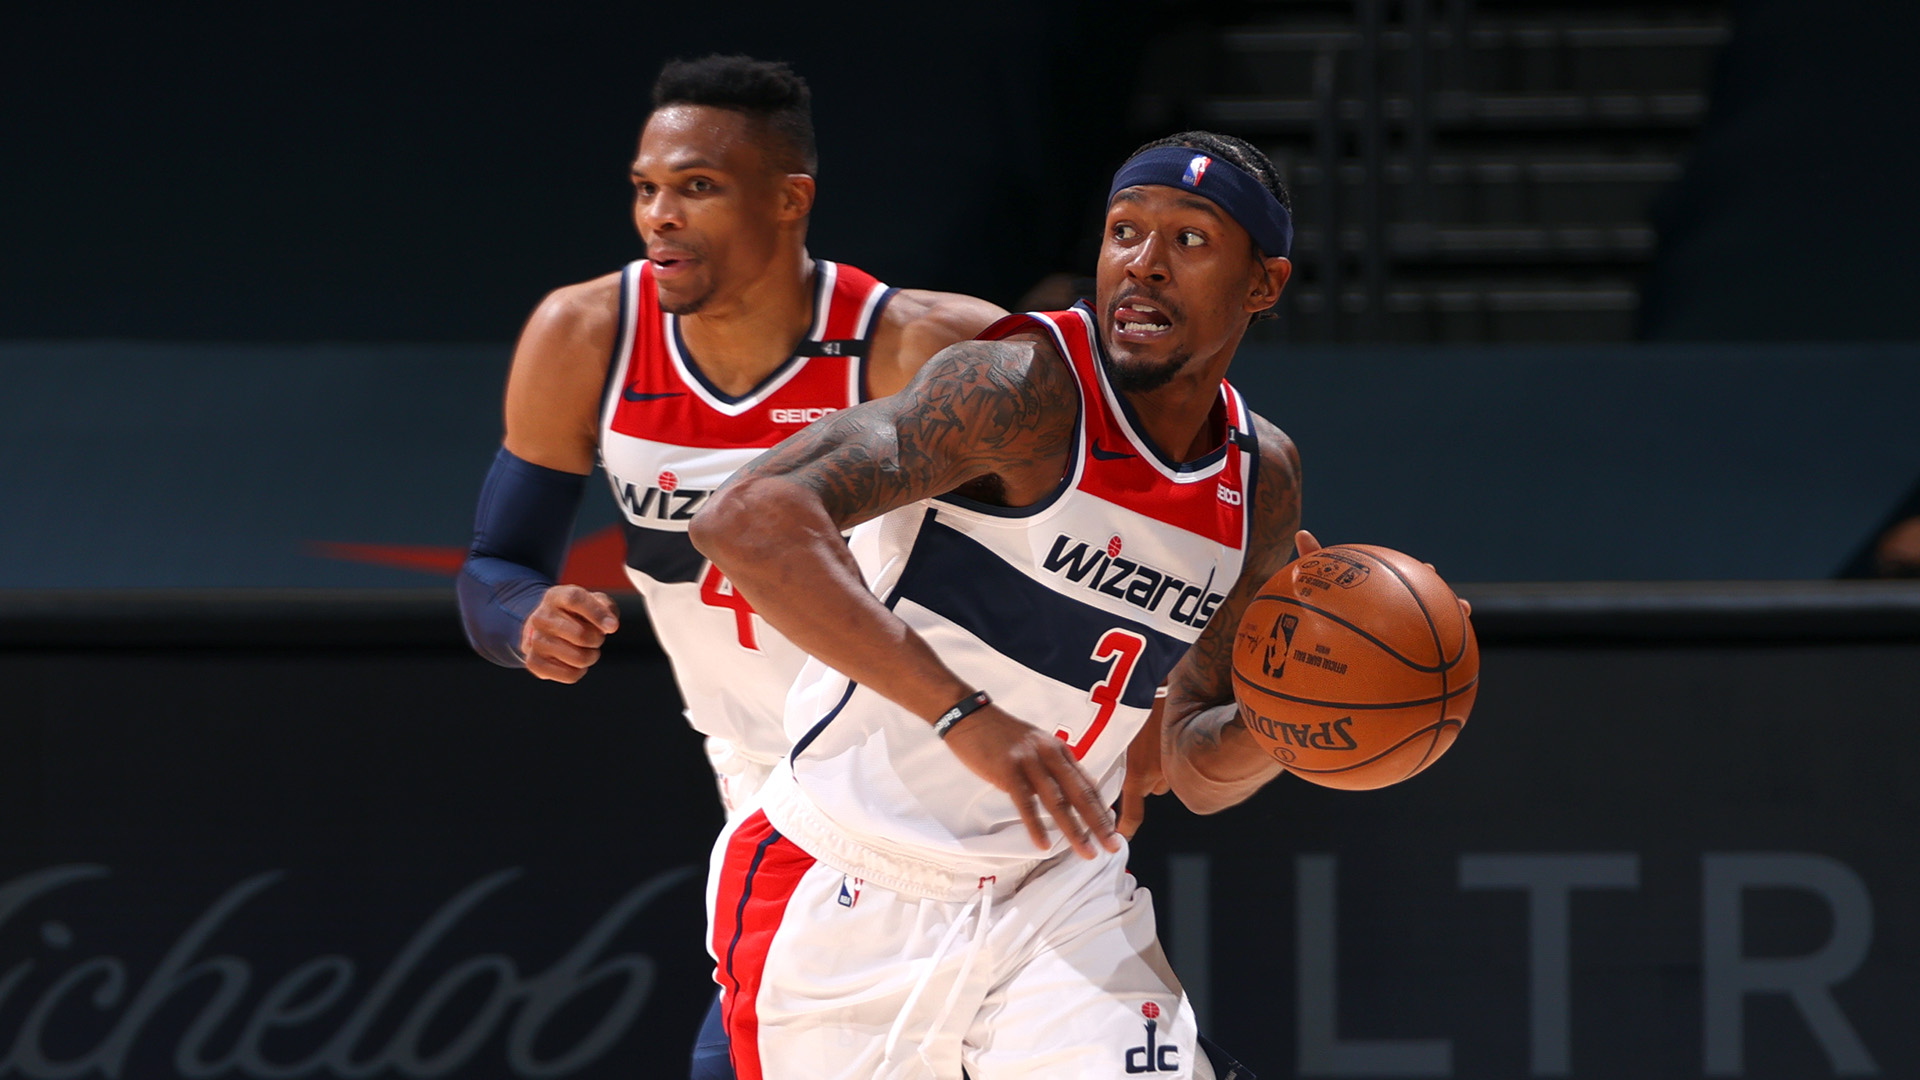 Into the Action: Wizards finishing strong down stretch